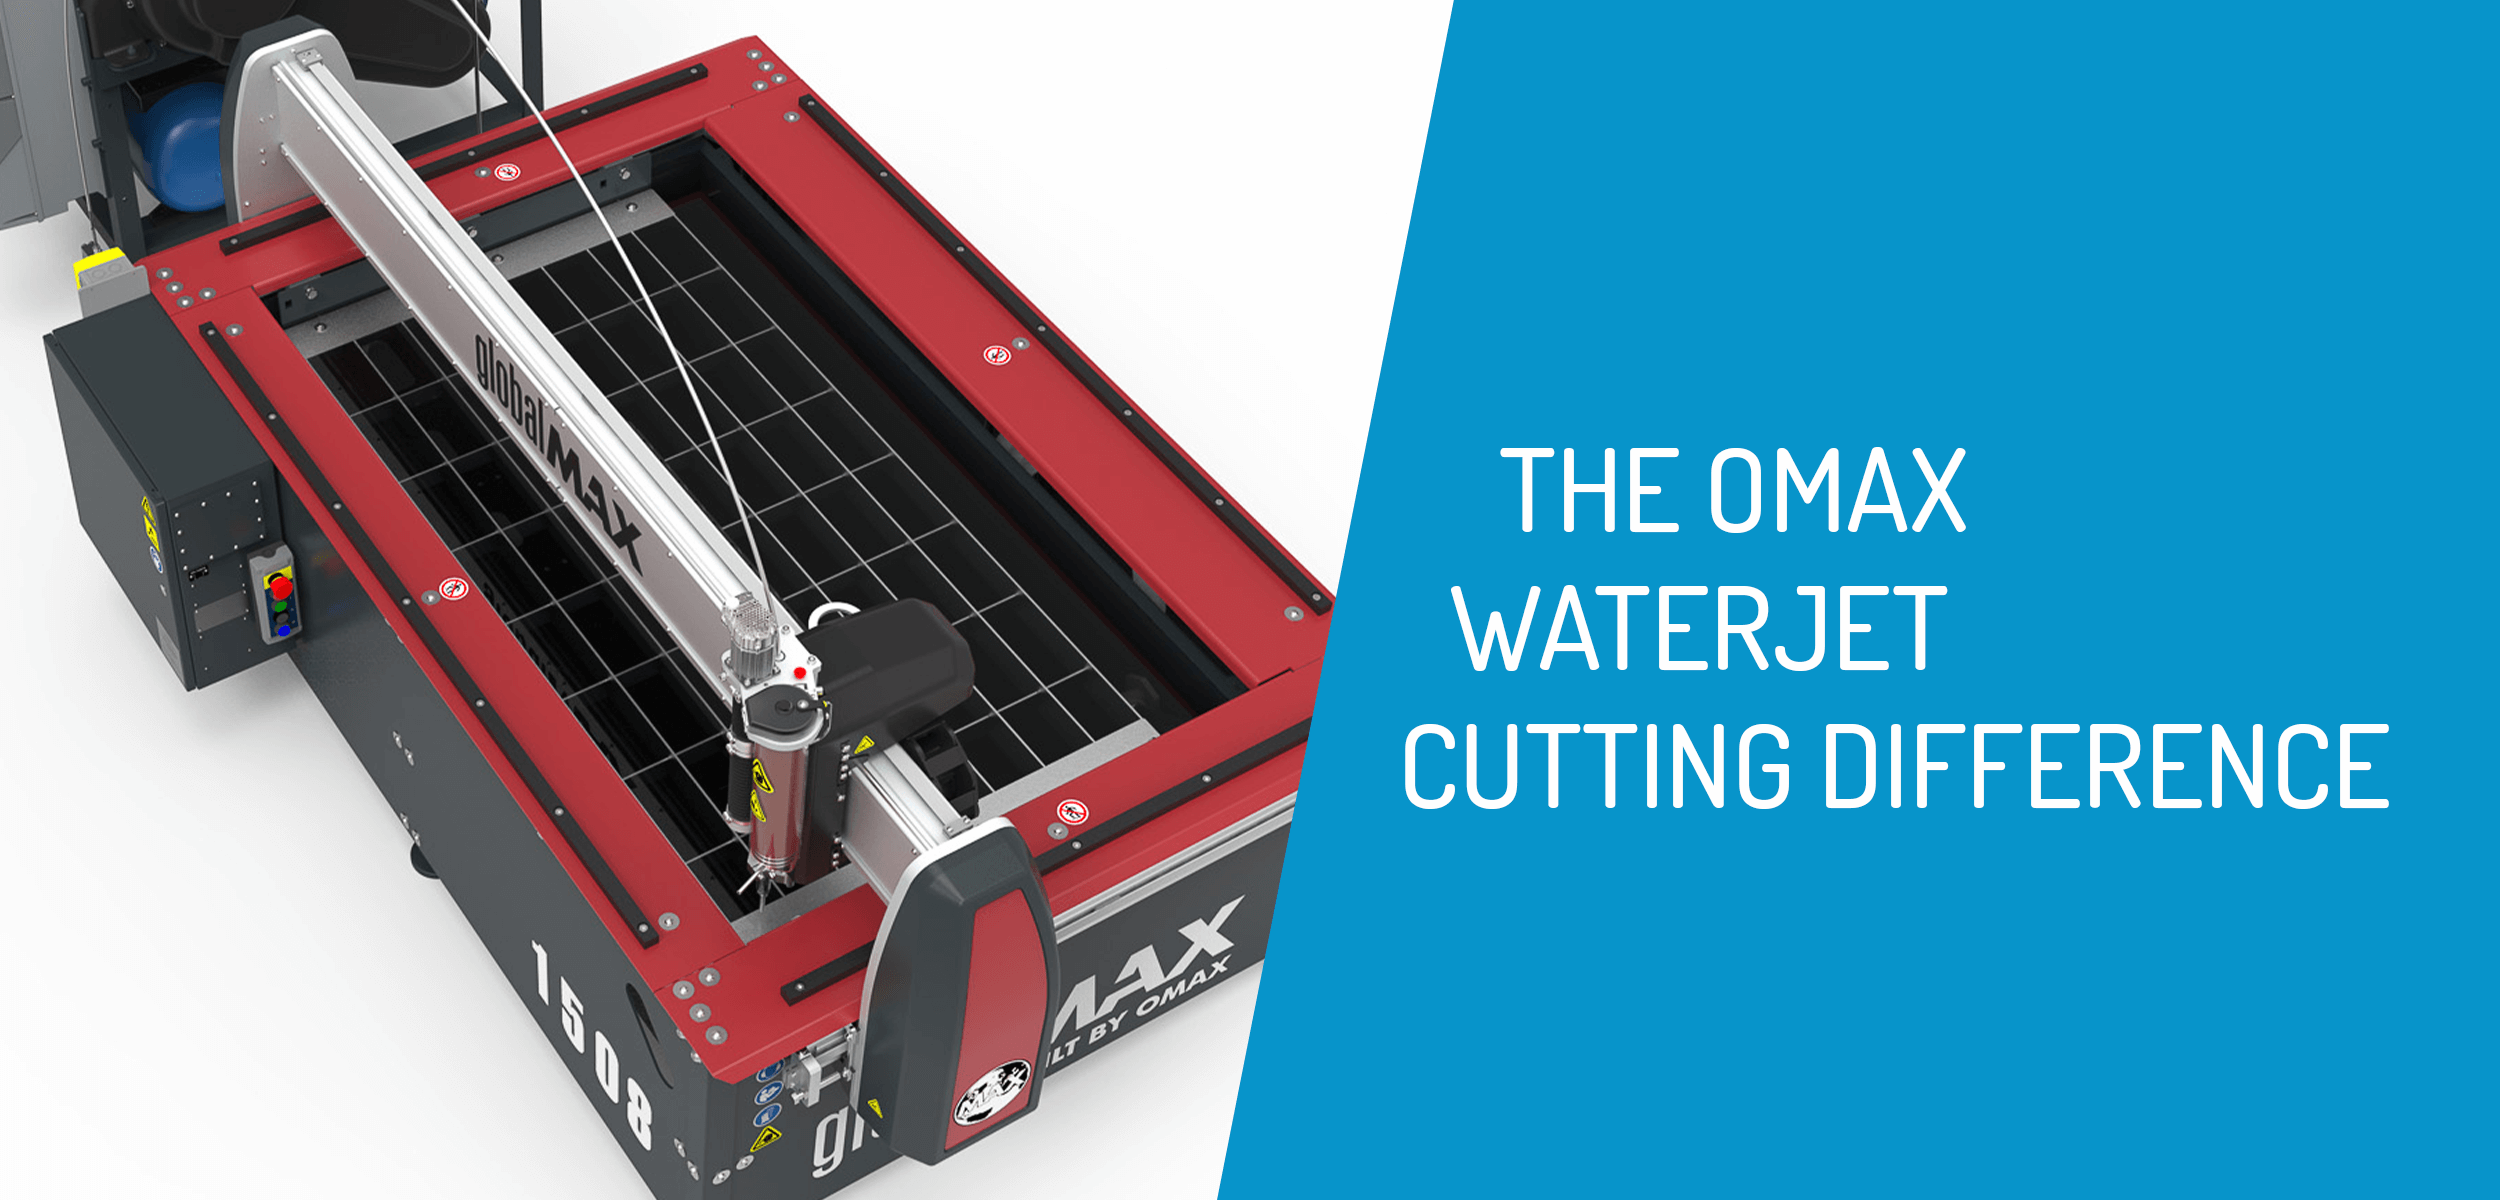 OMAX Waterjet Cutting Difference